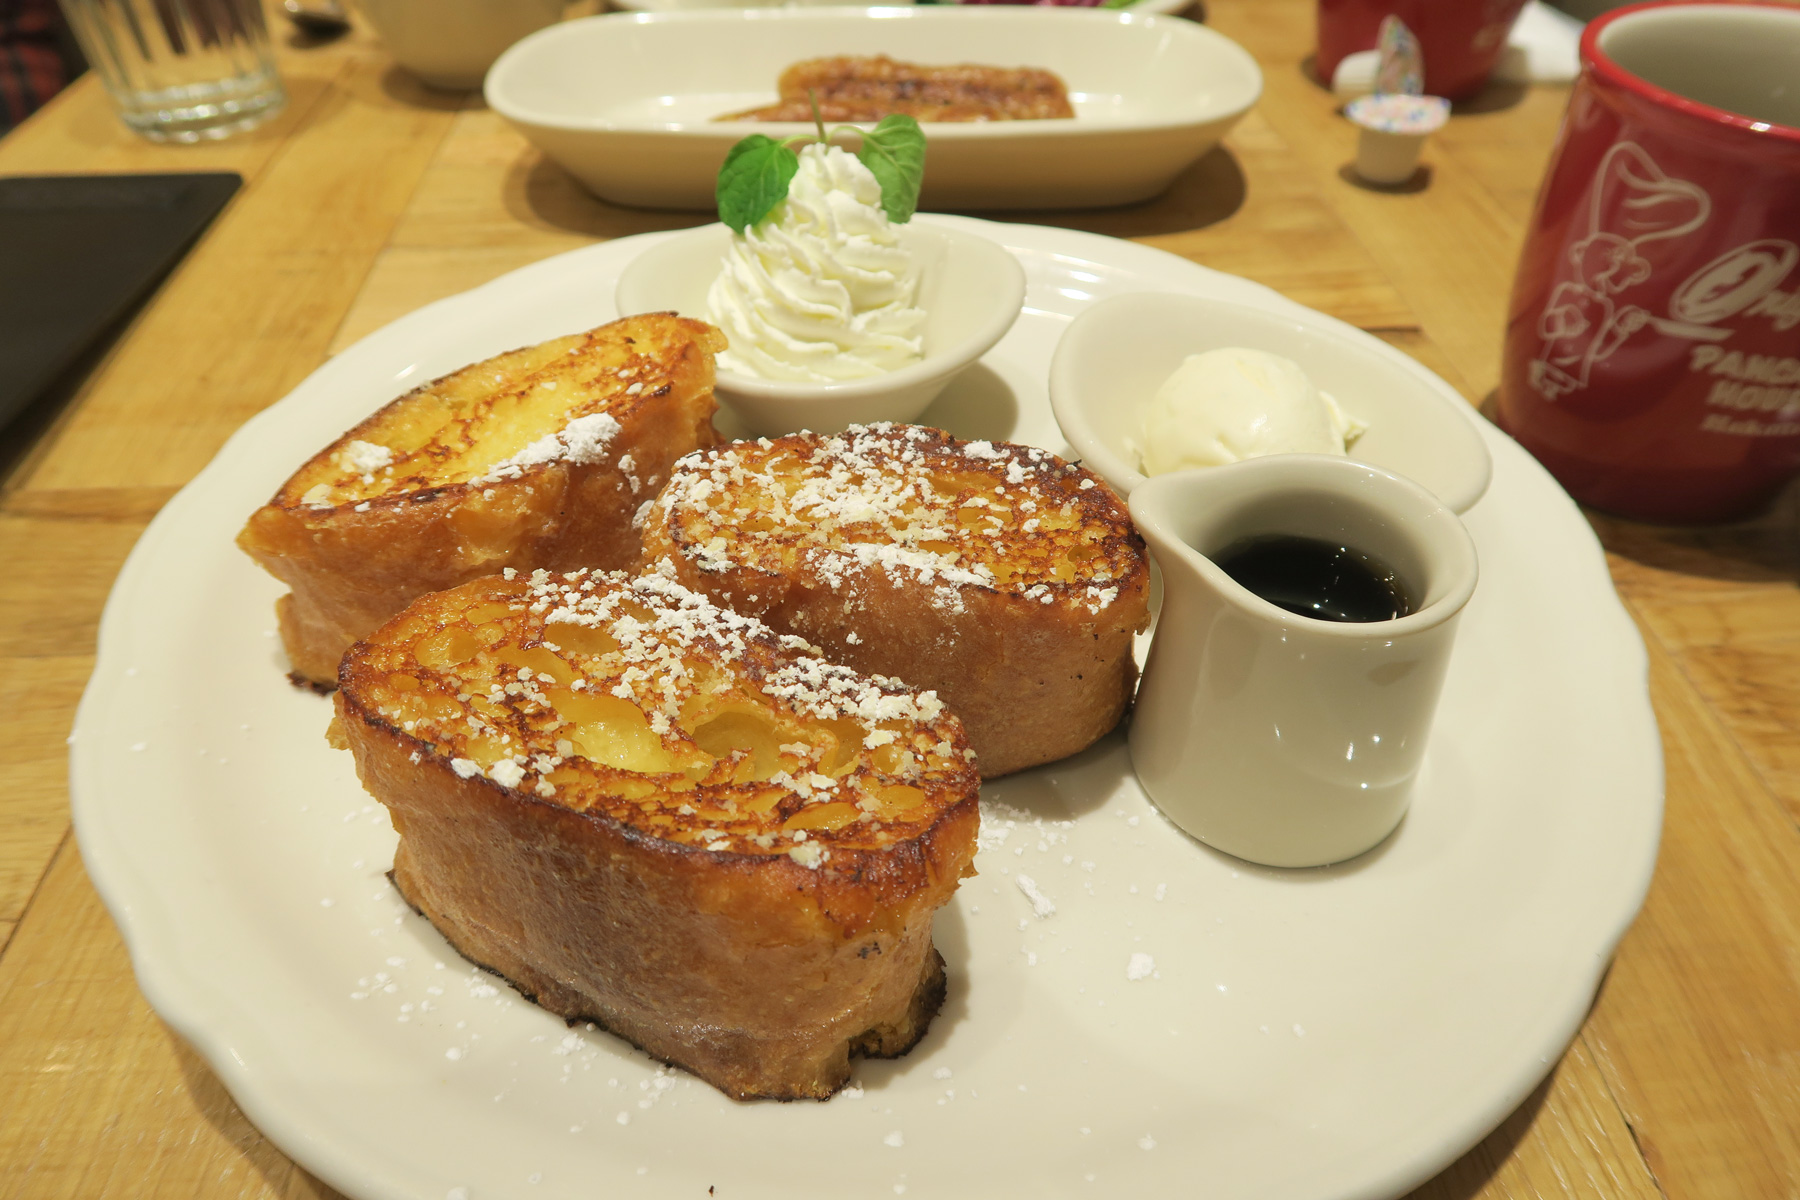 French Toast with Soft Serve Ice Cream